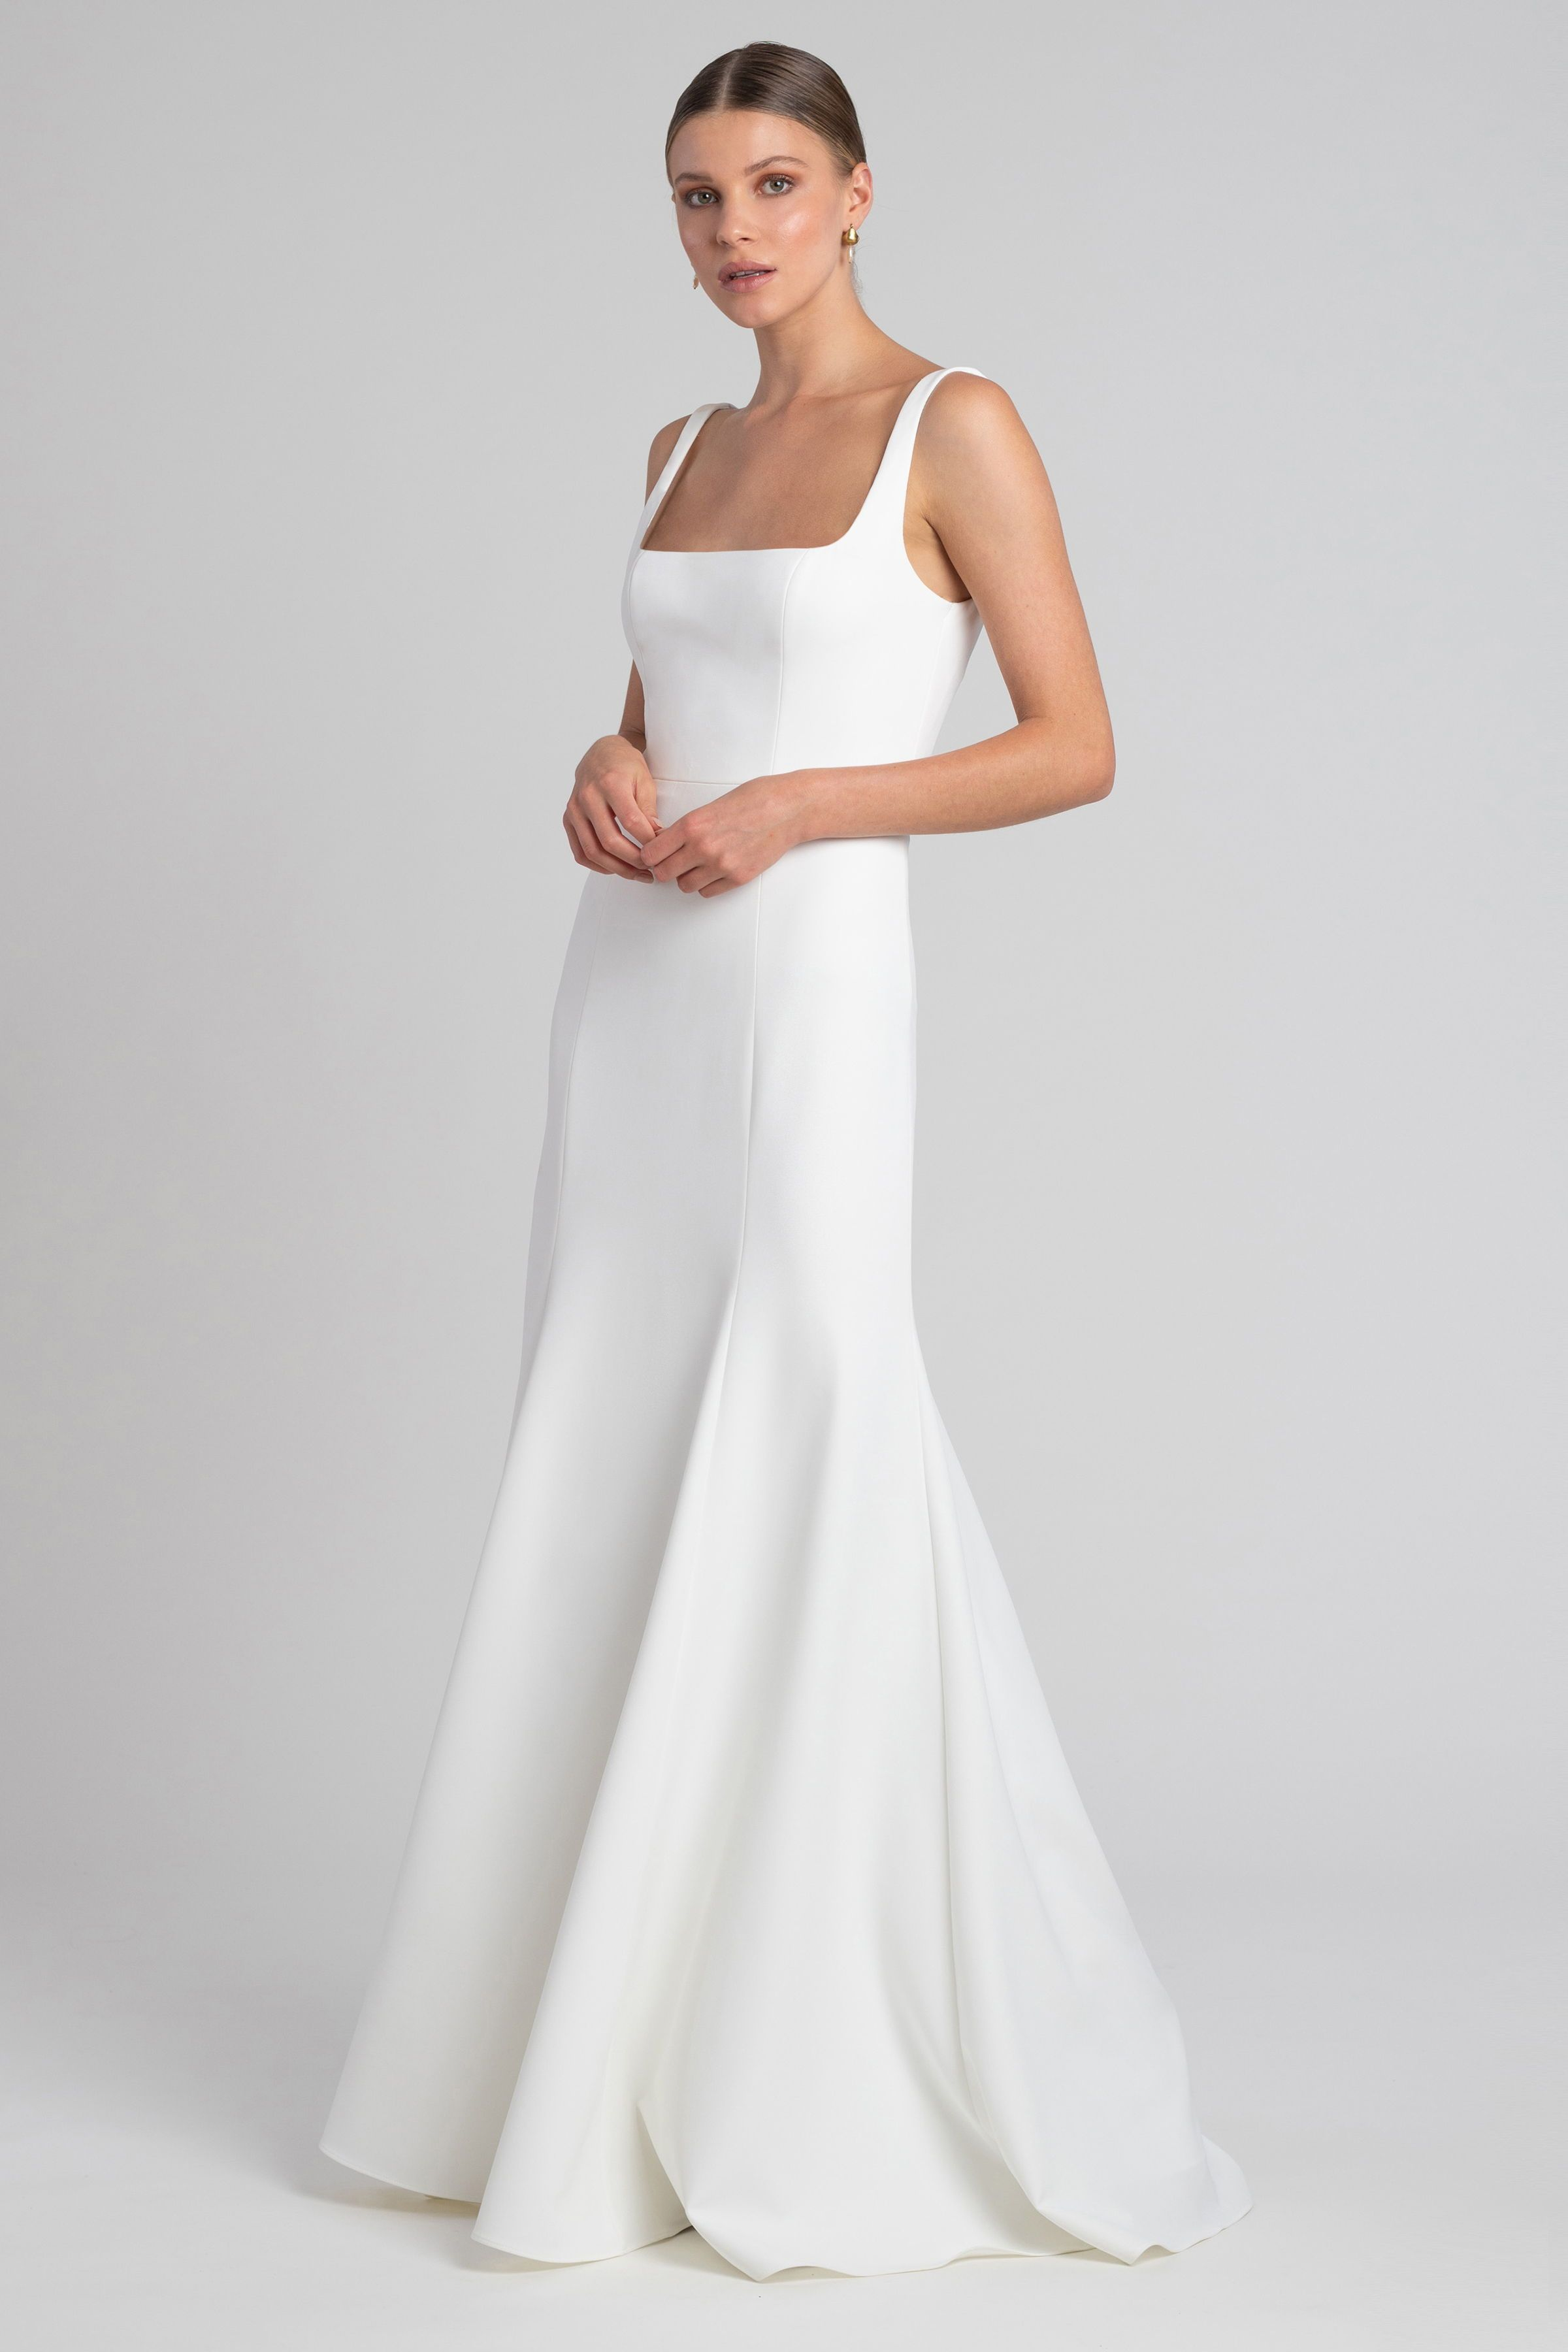 Portia By Jenny Yoo Shop Online Now In 2021 Wedding Dress Shopping Bridal Gowns Wedding Dresses [ 3600 x 2400 Pixel ]